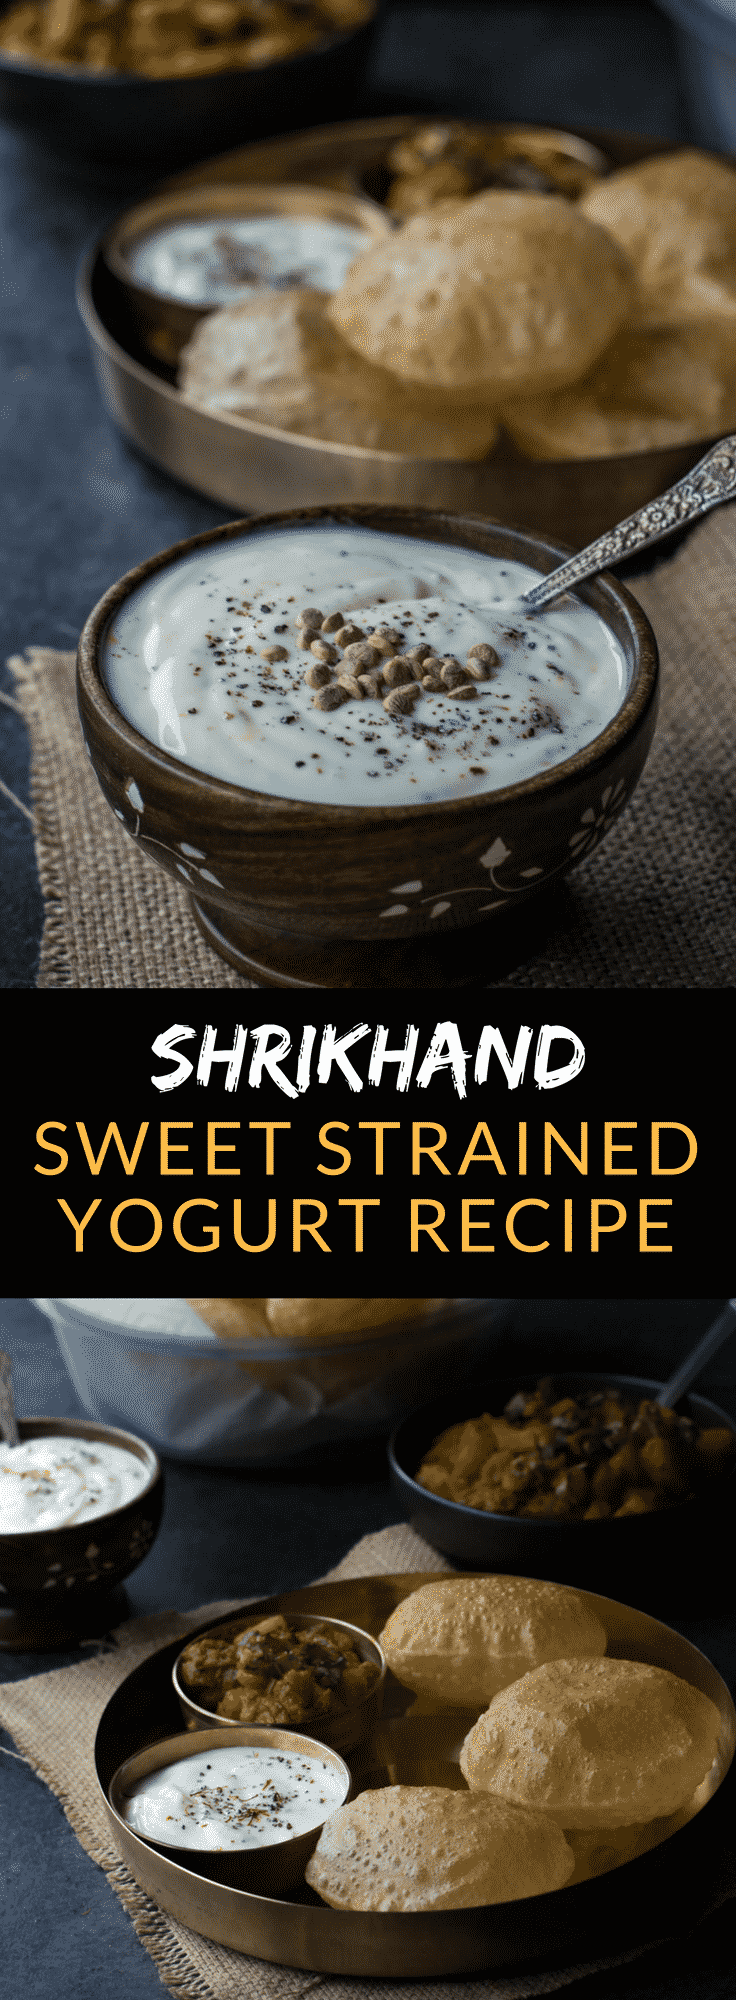 Elaichi Shrikhand recipe- This addictive Indian sweet dish made from thick or Greek yogurt takes all of 5 minutes and can be served as a dessert or as a delicious accompaniment to pooris (Indian flatbread). #Indiancuisine #Indiandessert #Indianfood #shrikhand